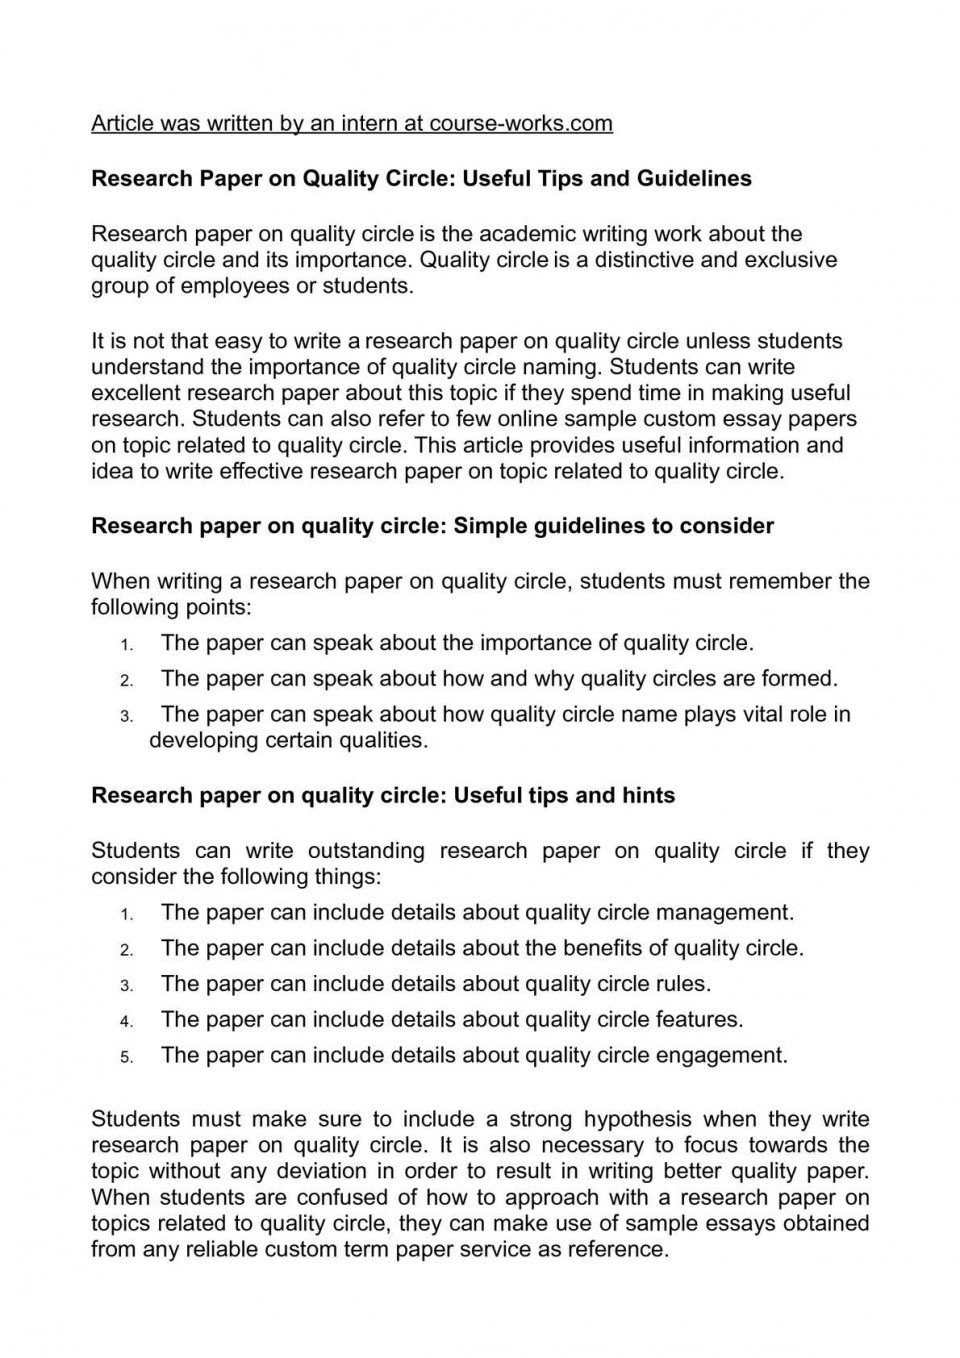 008 Easy Topics For Research Paper Awful A In Philippines Persuasive Psychology 960